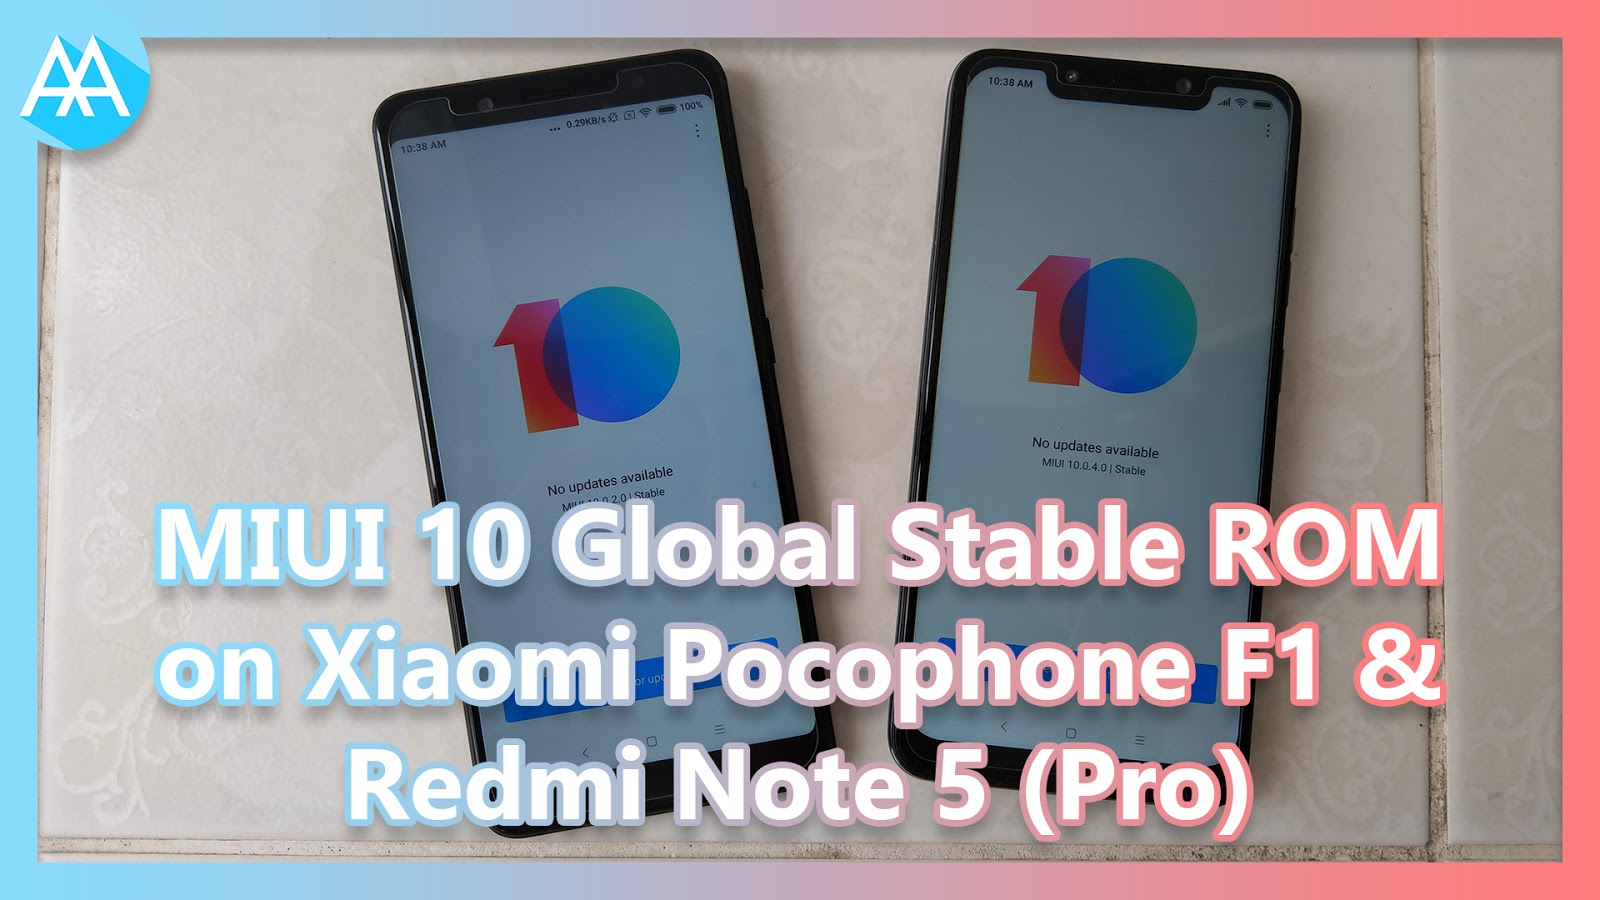 MIUI 10 Global Stable ROM on Xiaomi Pocophone F1 and Redmi